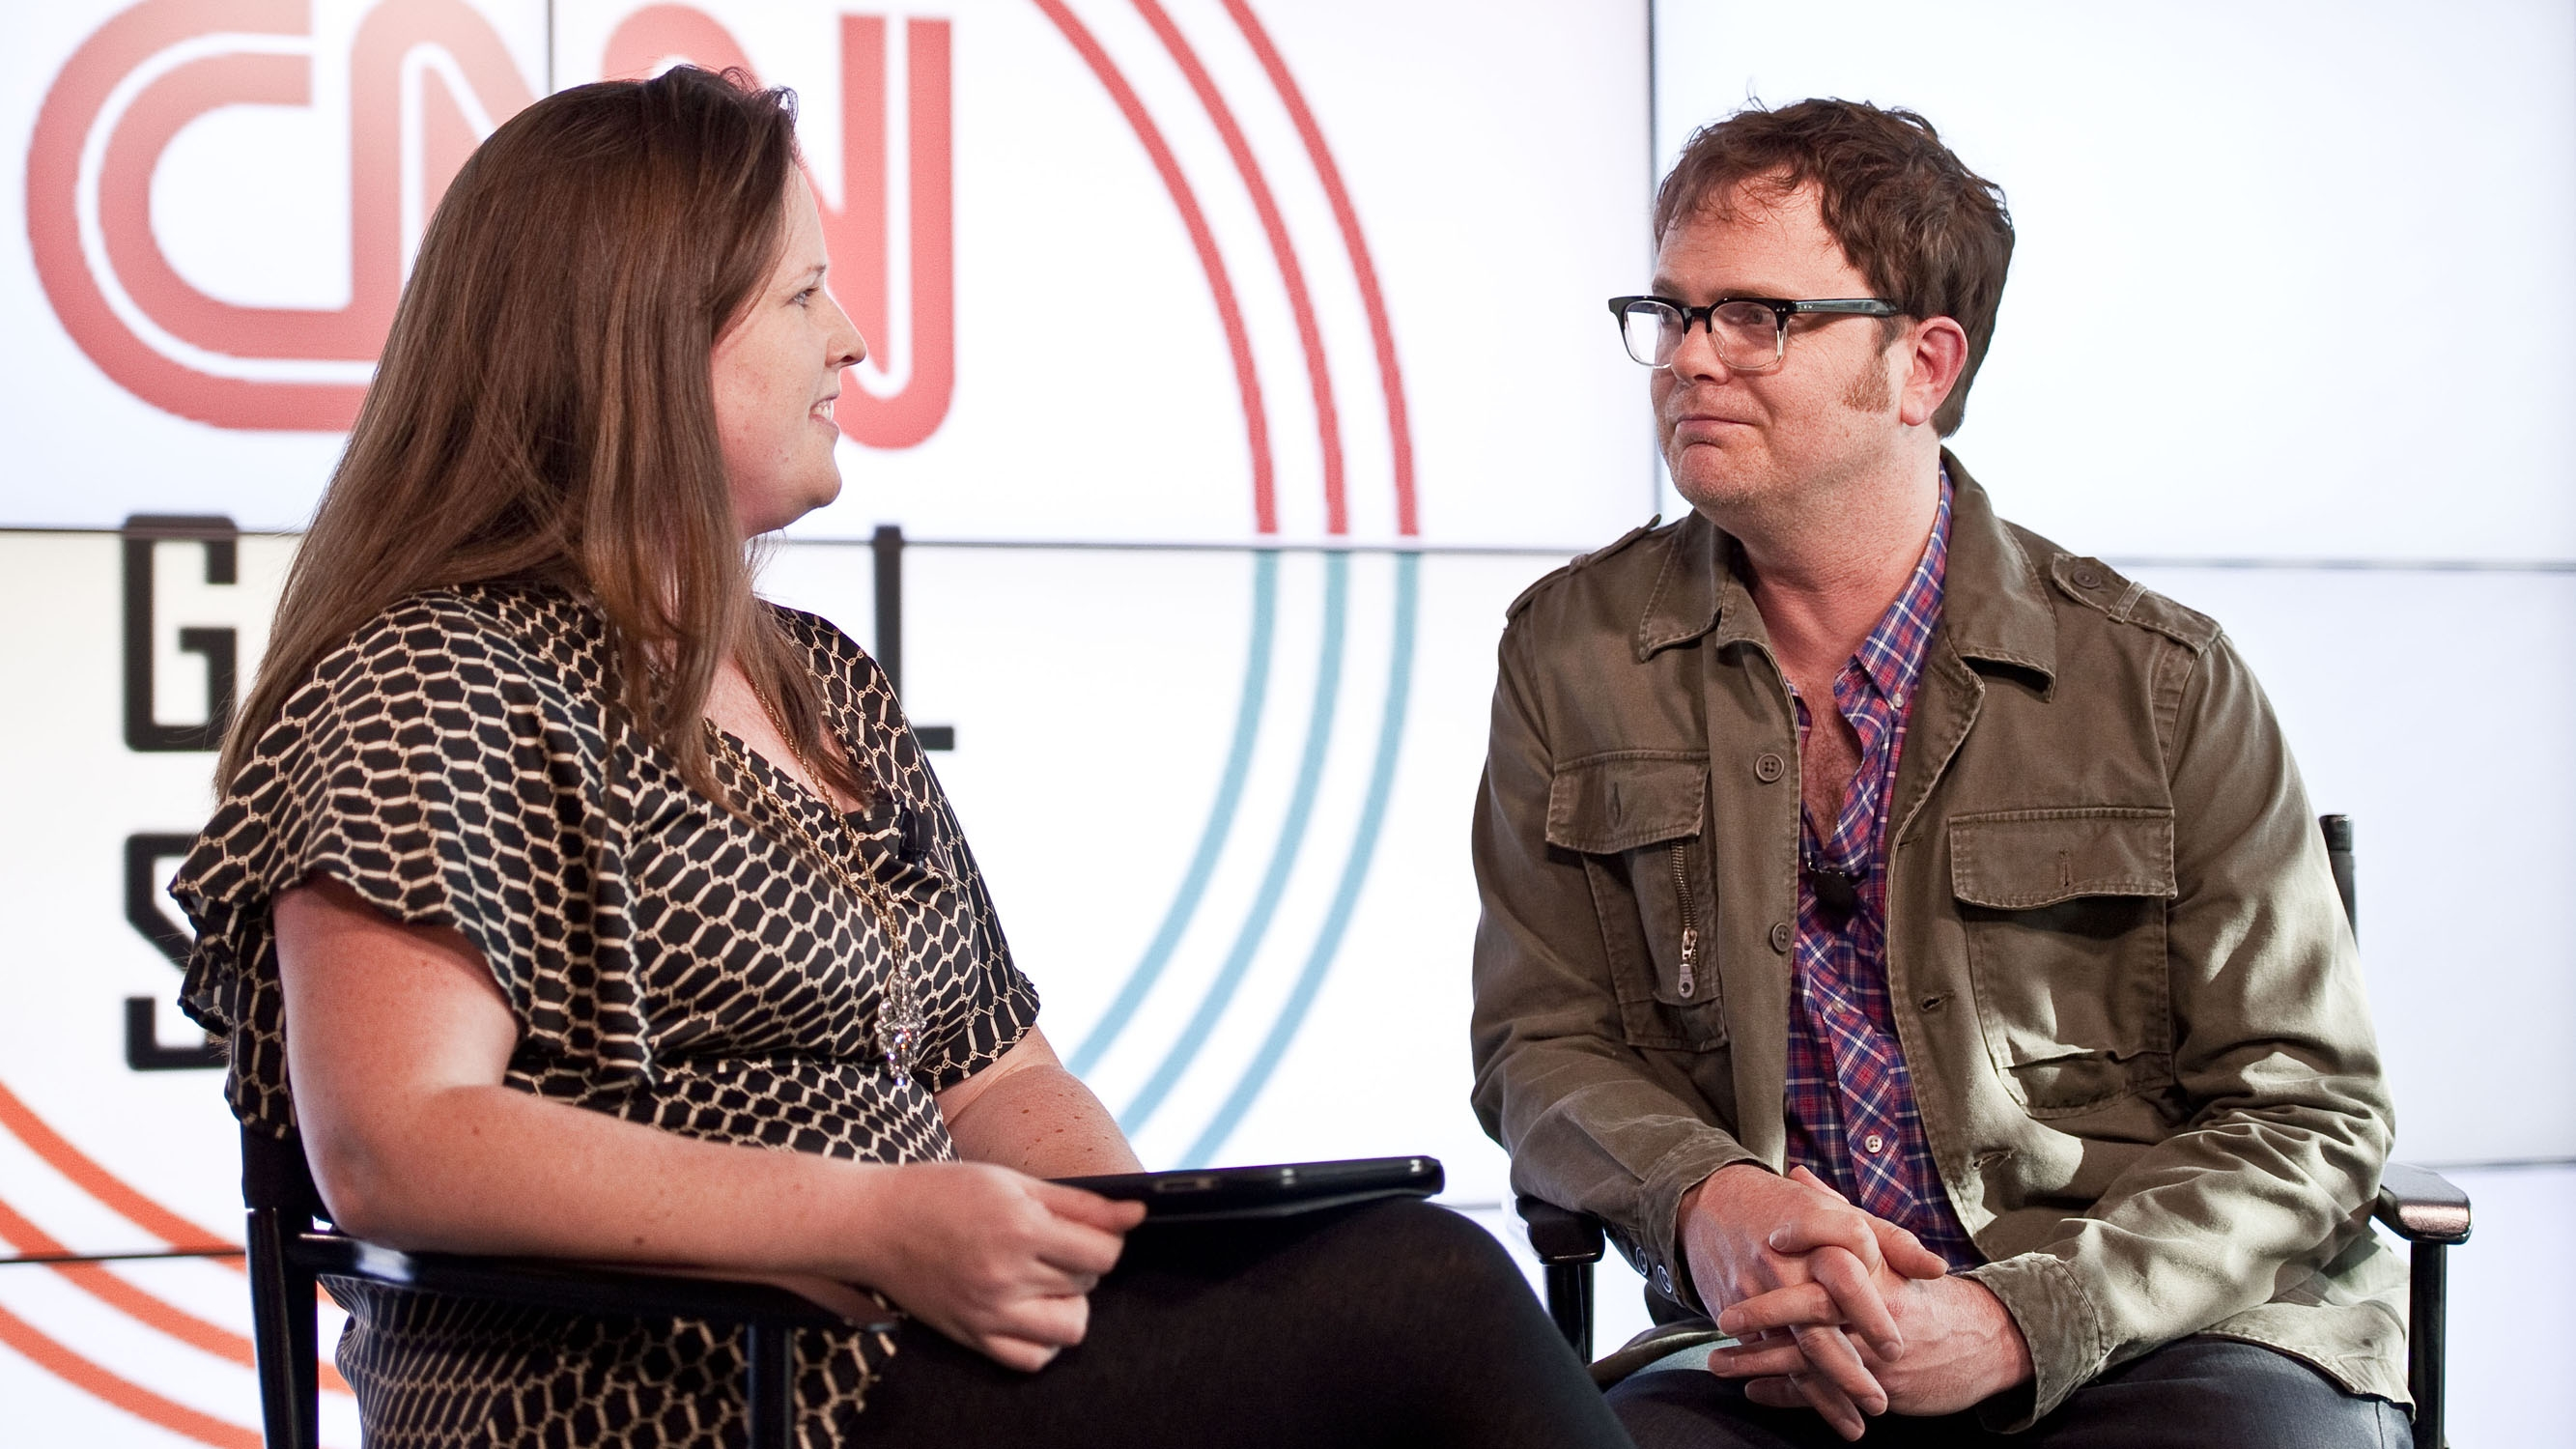 CNN @ SXSW: Rainn Wilson Interview